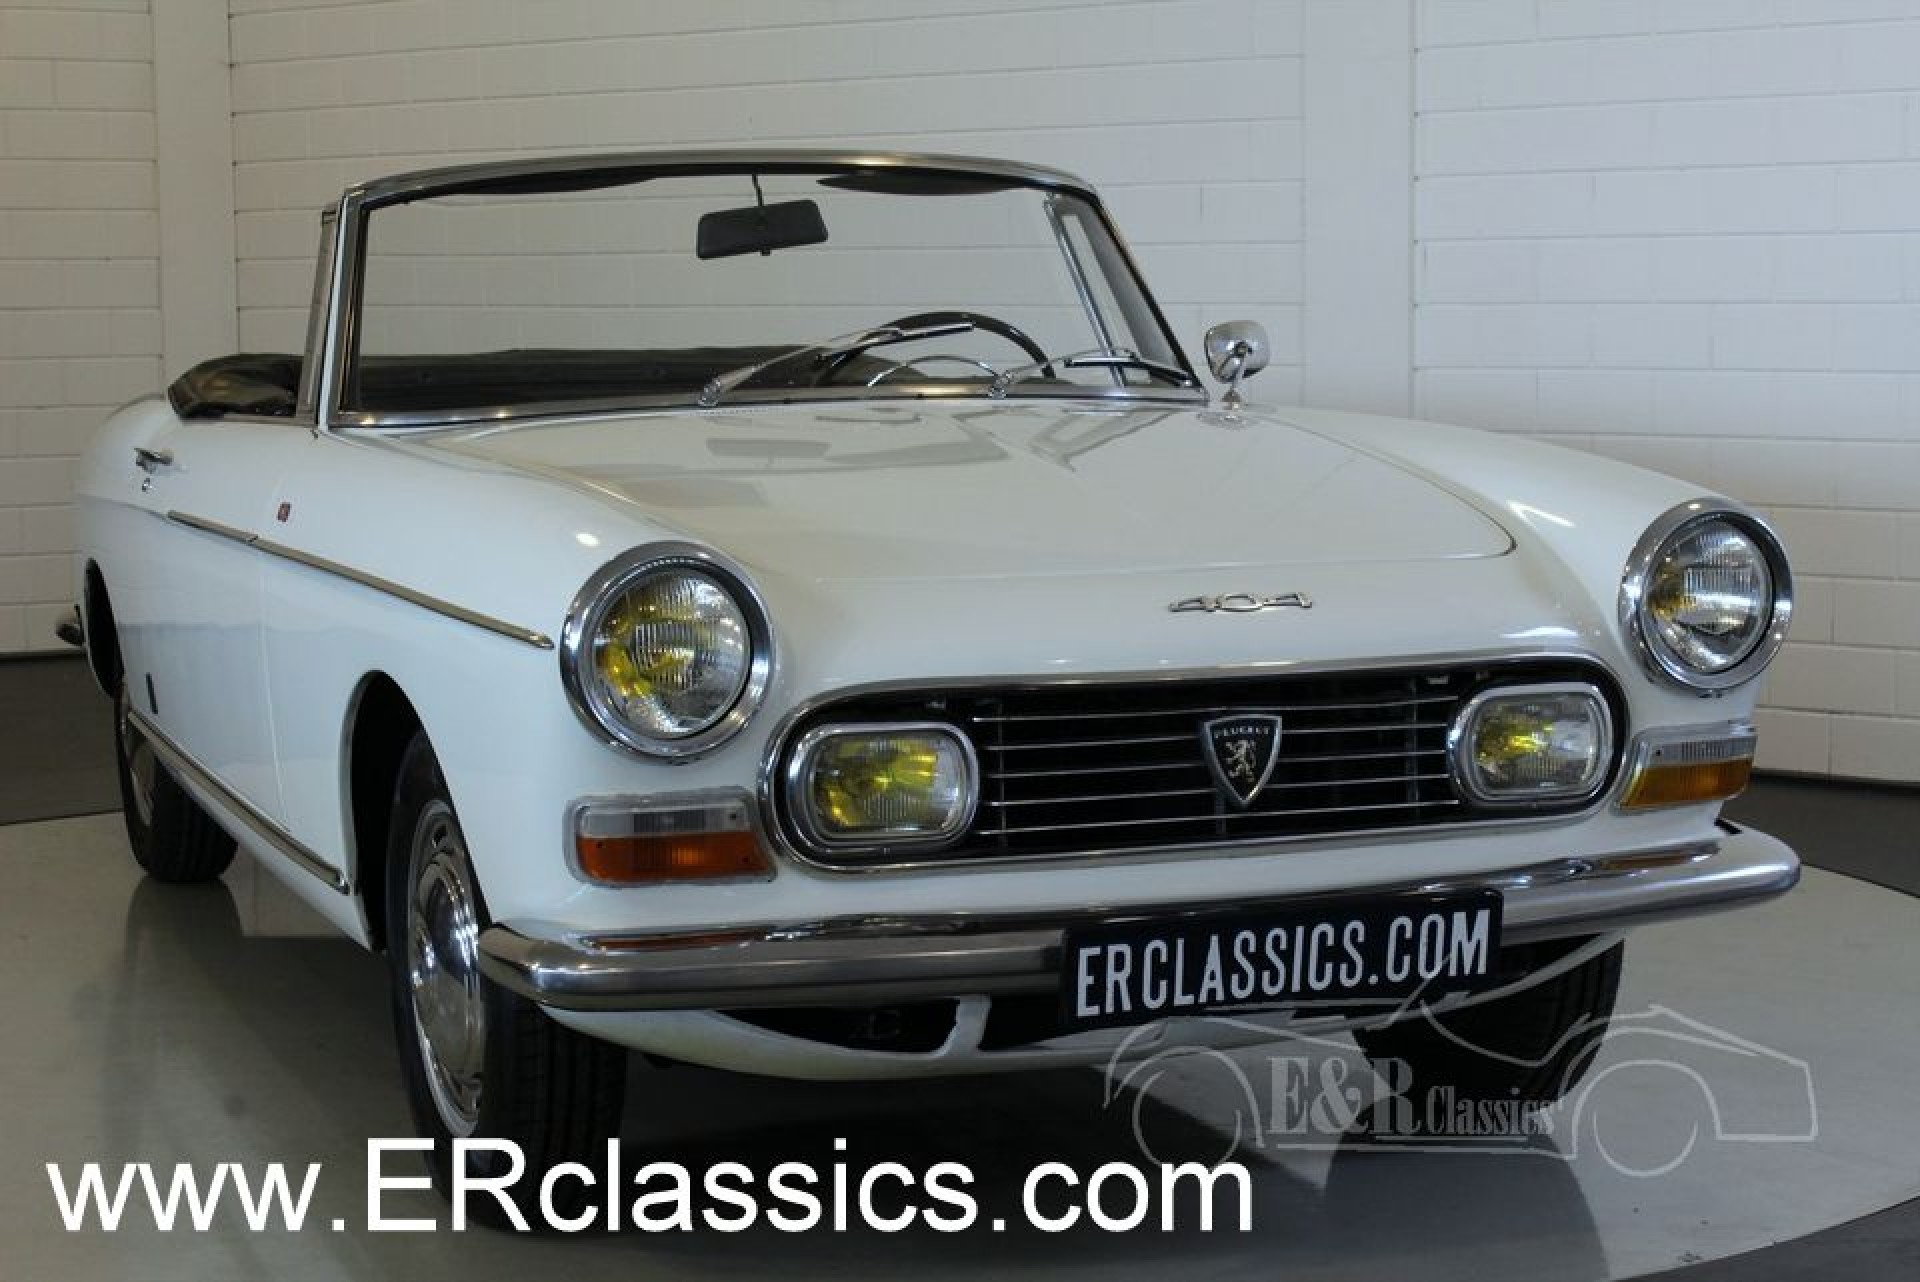 peugeot 404 cabriolet 1967 for sale at erclassics. Black Bedroom Furniture Sets. Home Design Ideas